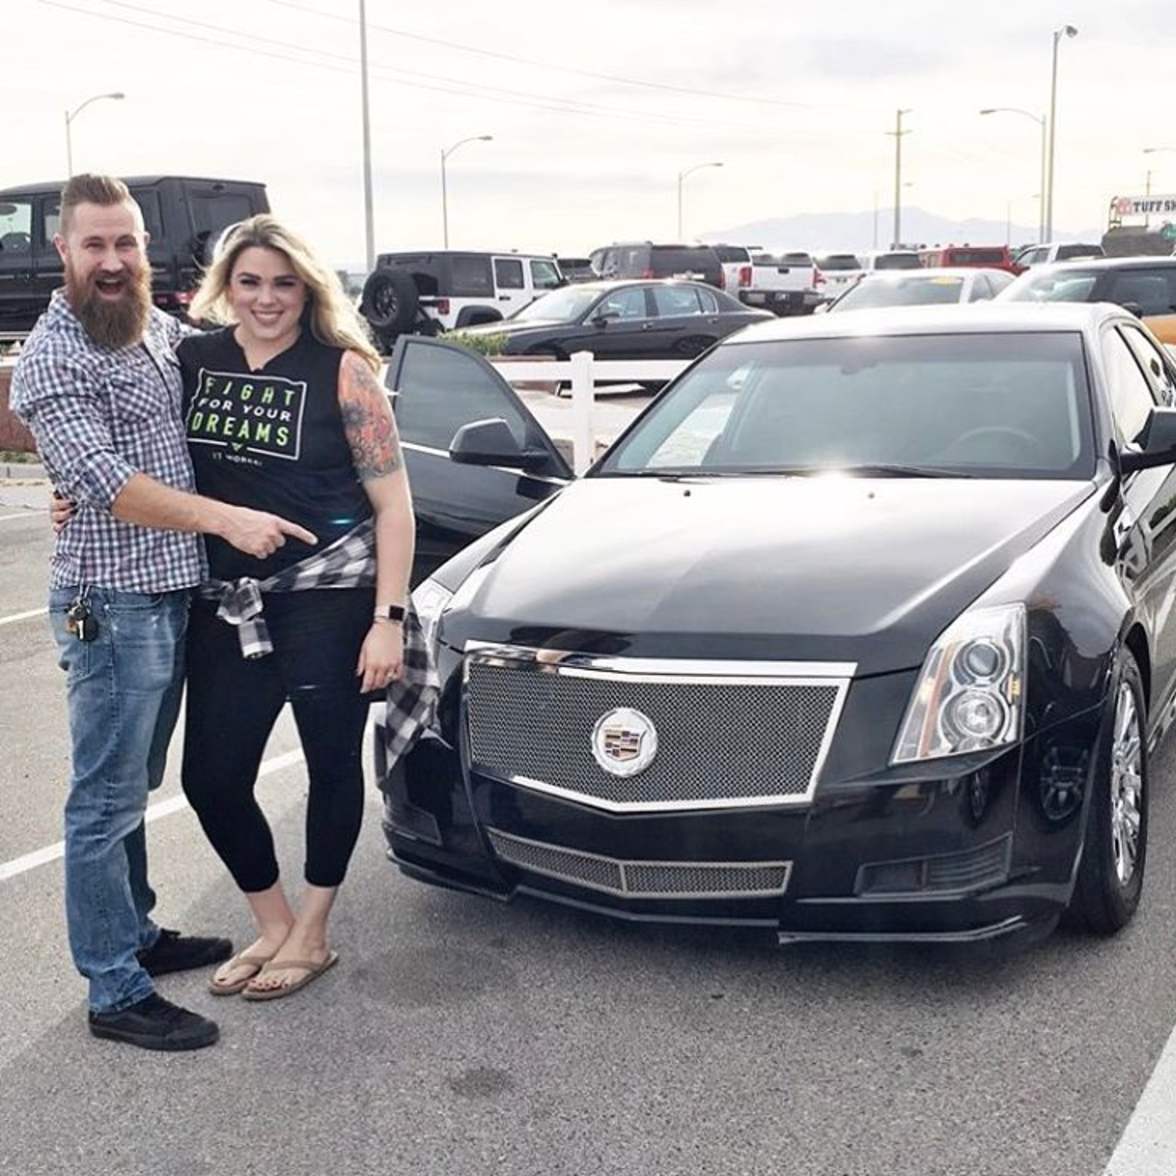 She bought me a Cadillac!